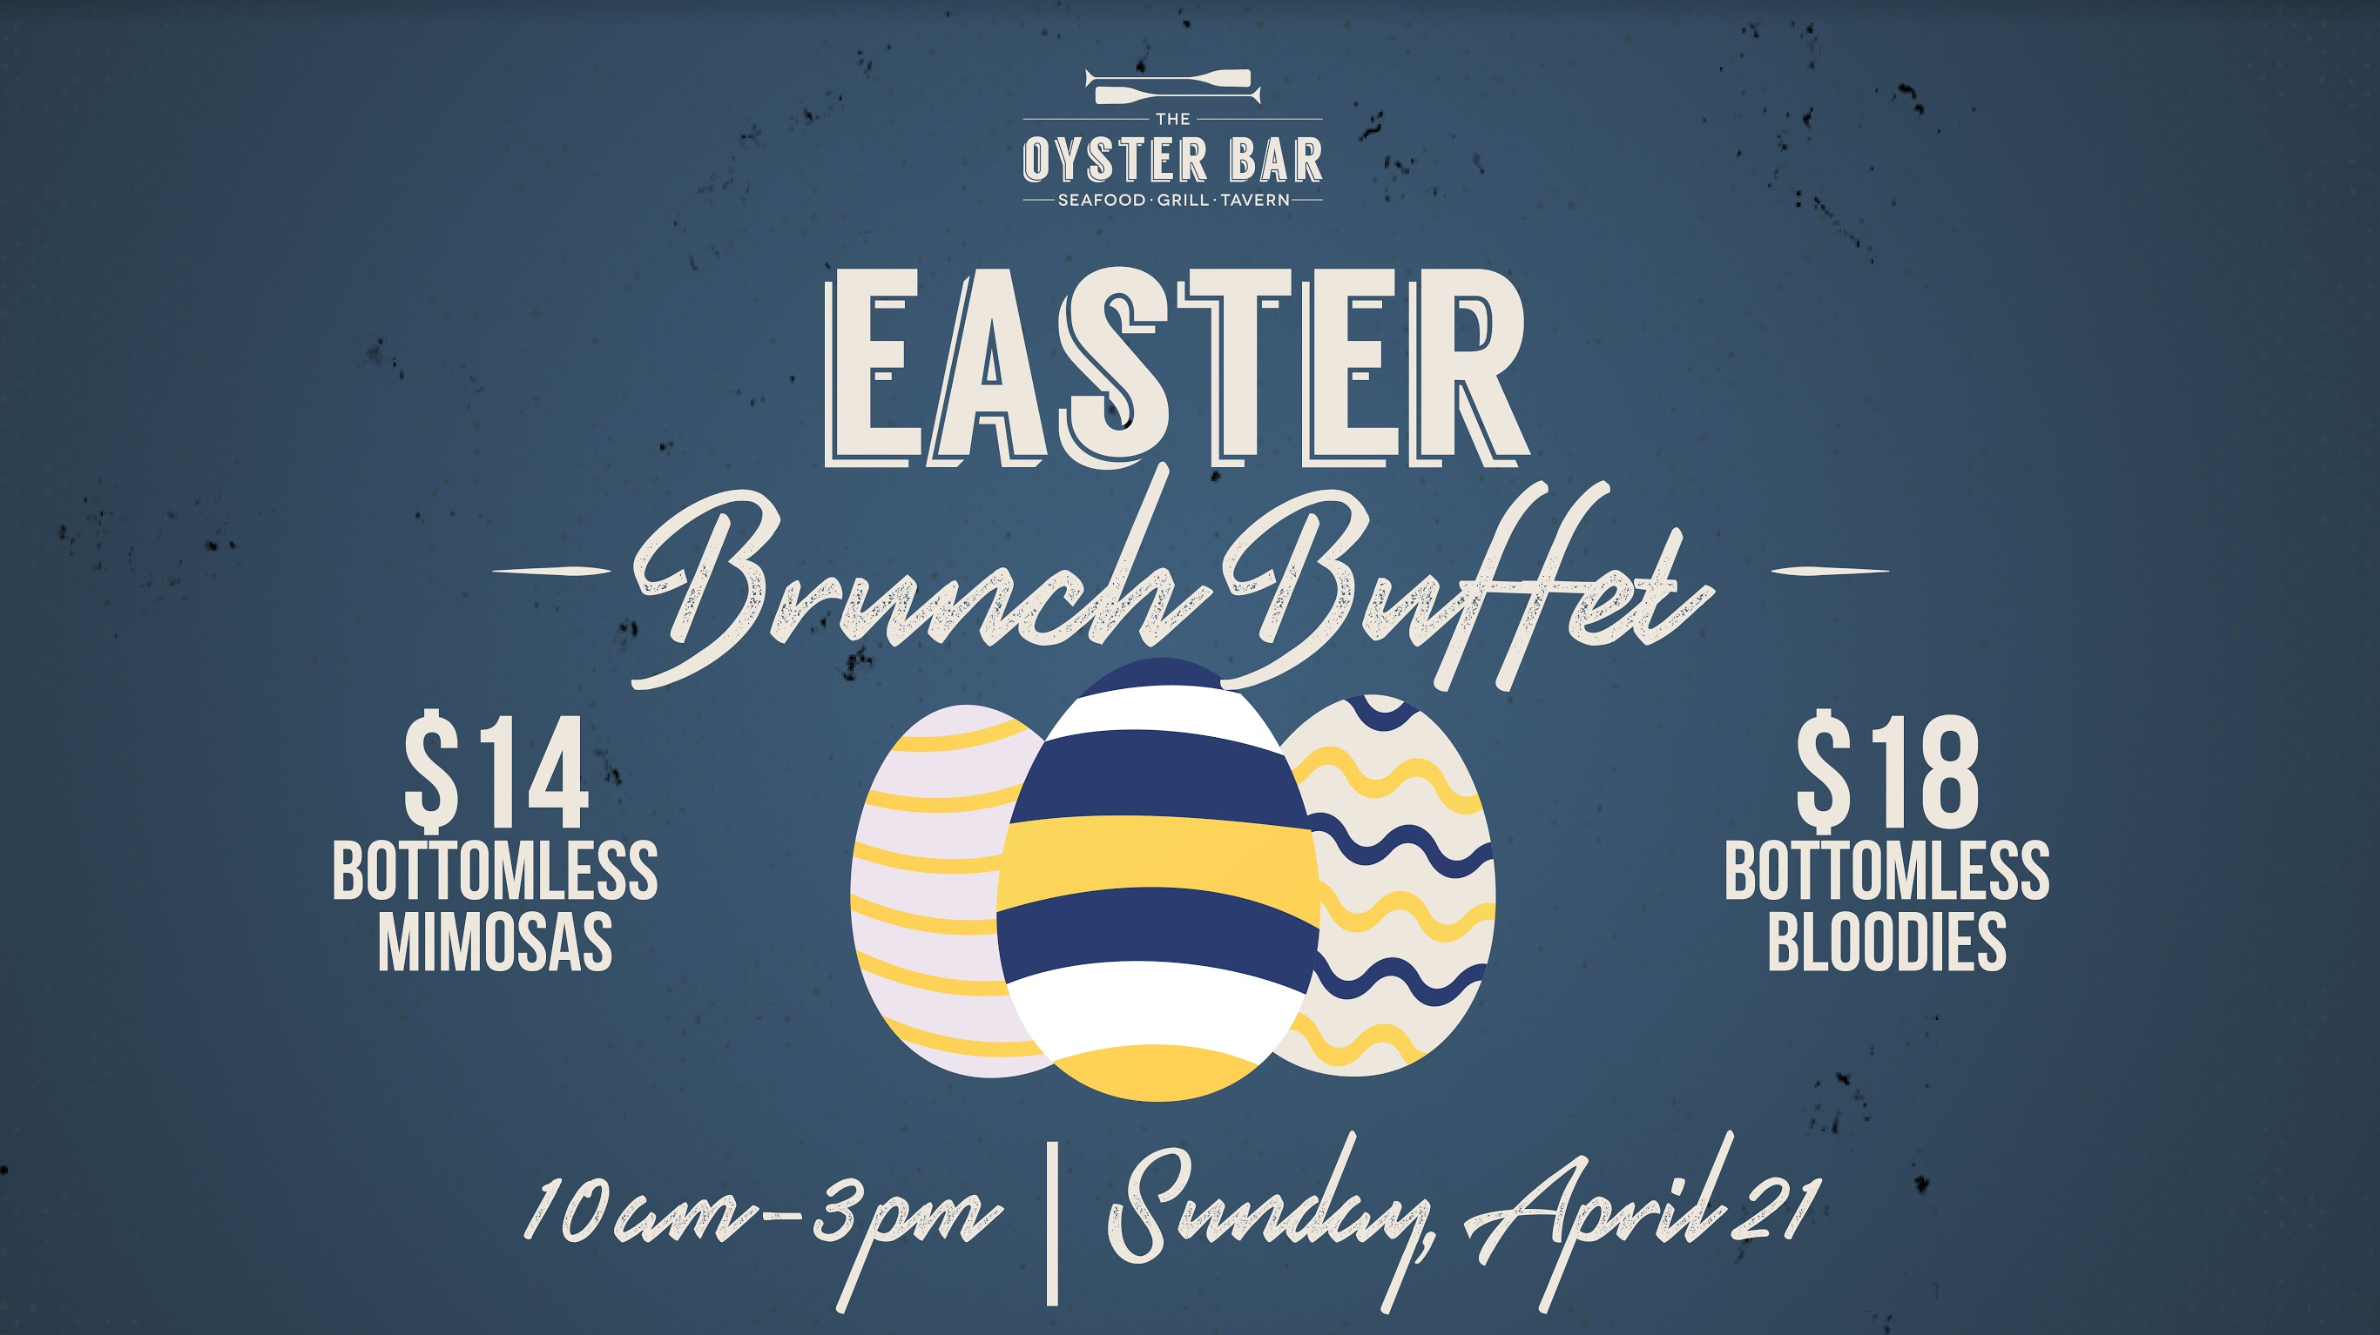 The Oyster Bar to Feature Brunch & Bubbly this Easter